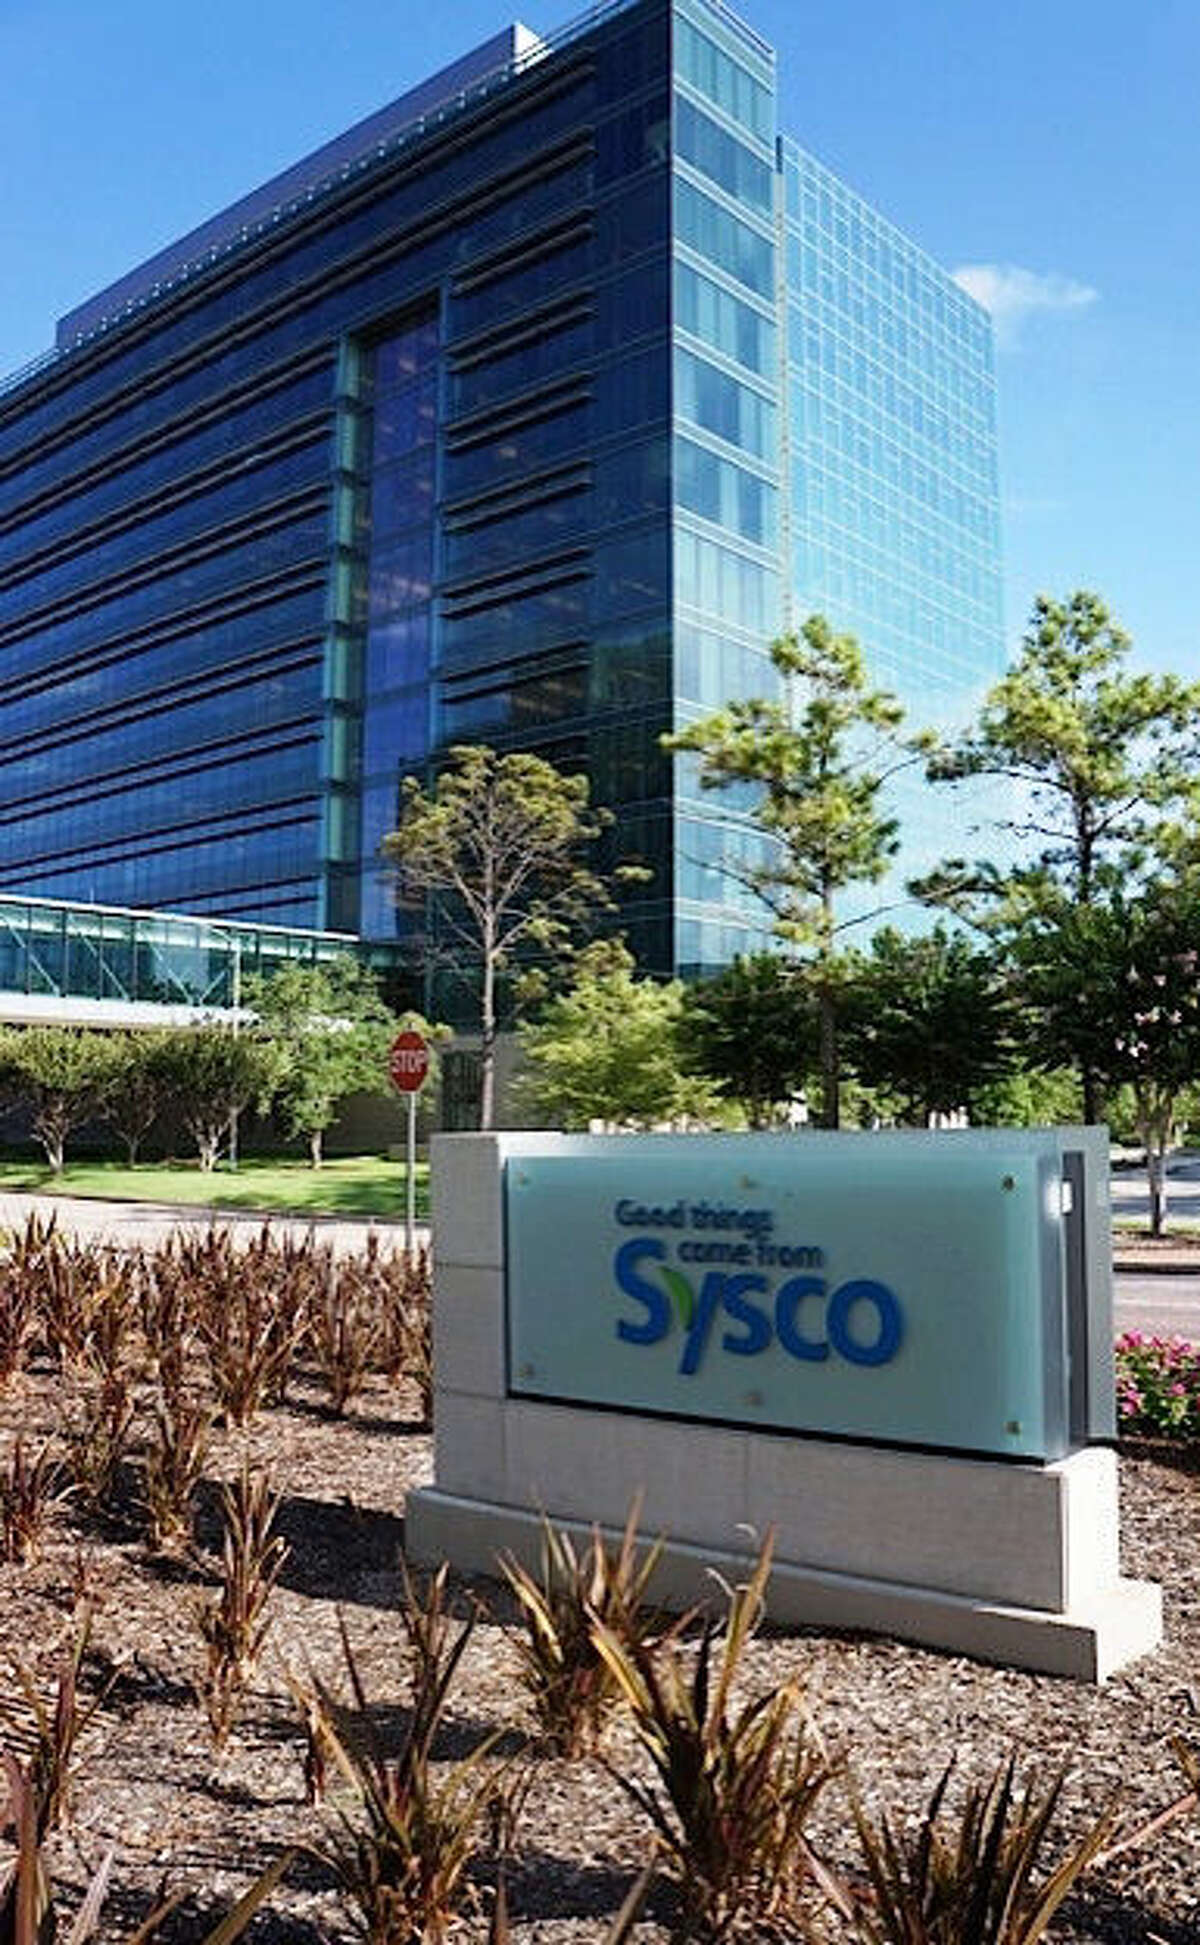 The $3.5 billion merger of food distribution giant Sysco and US Foods will be reviewed by regulators.